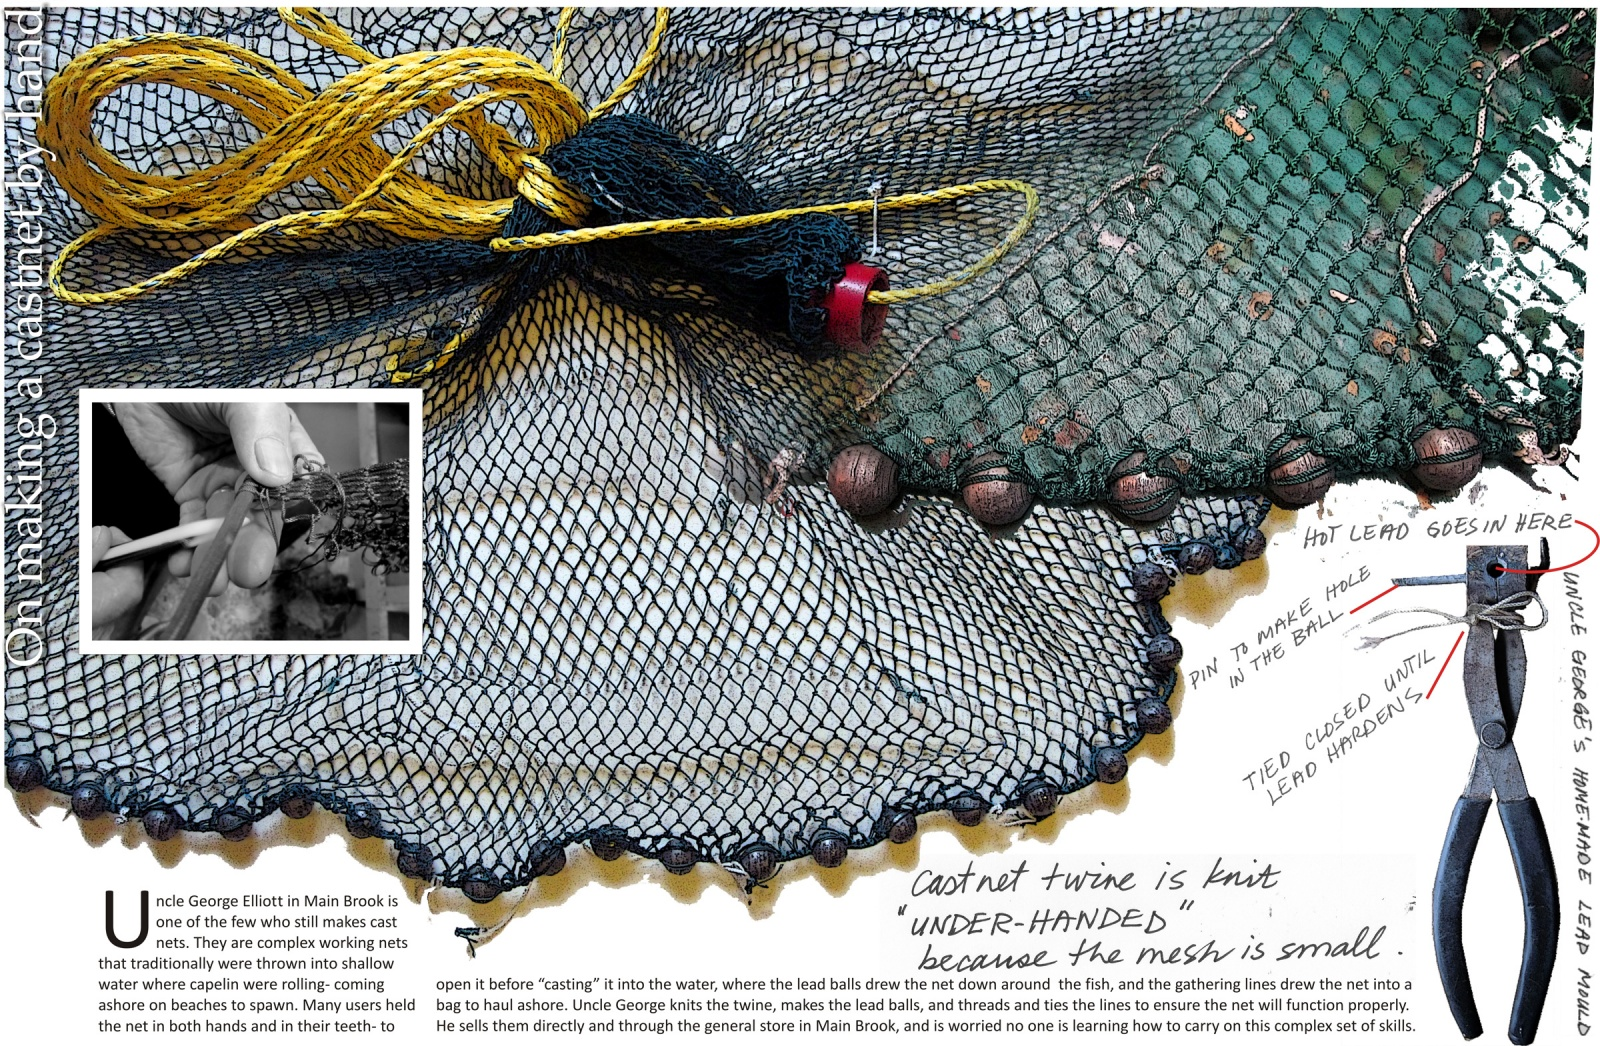 On making a castnet by hand